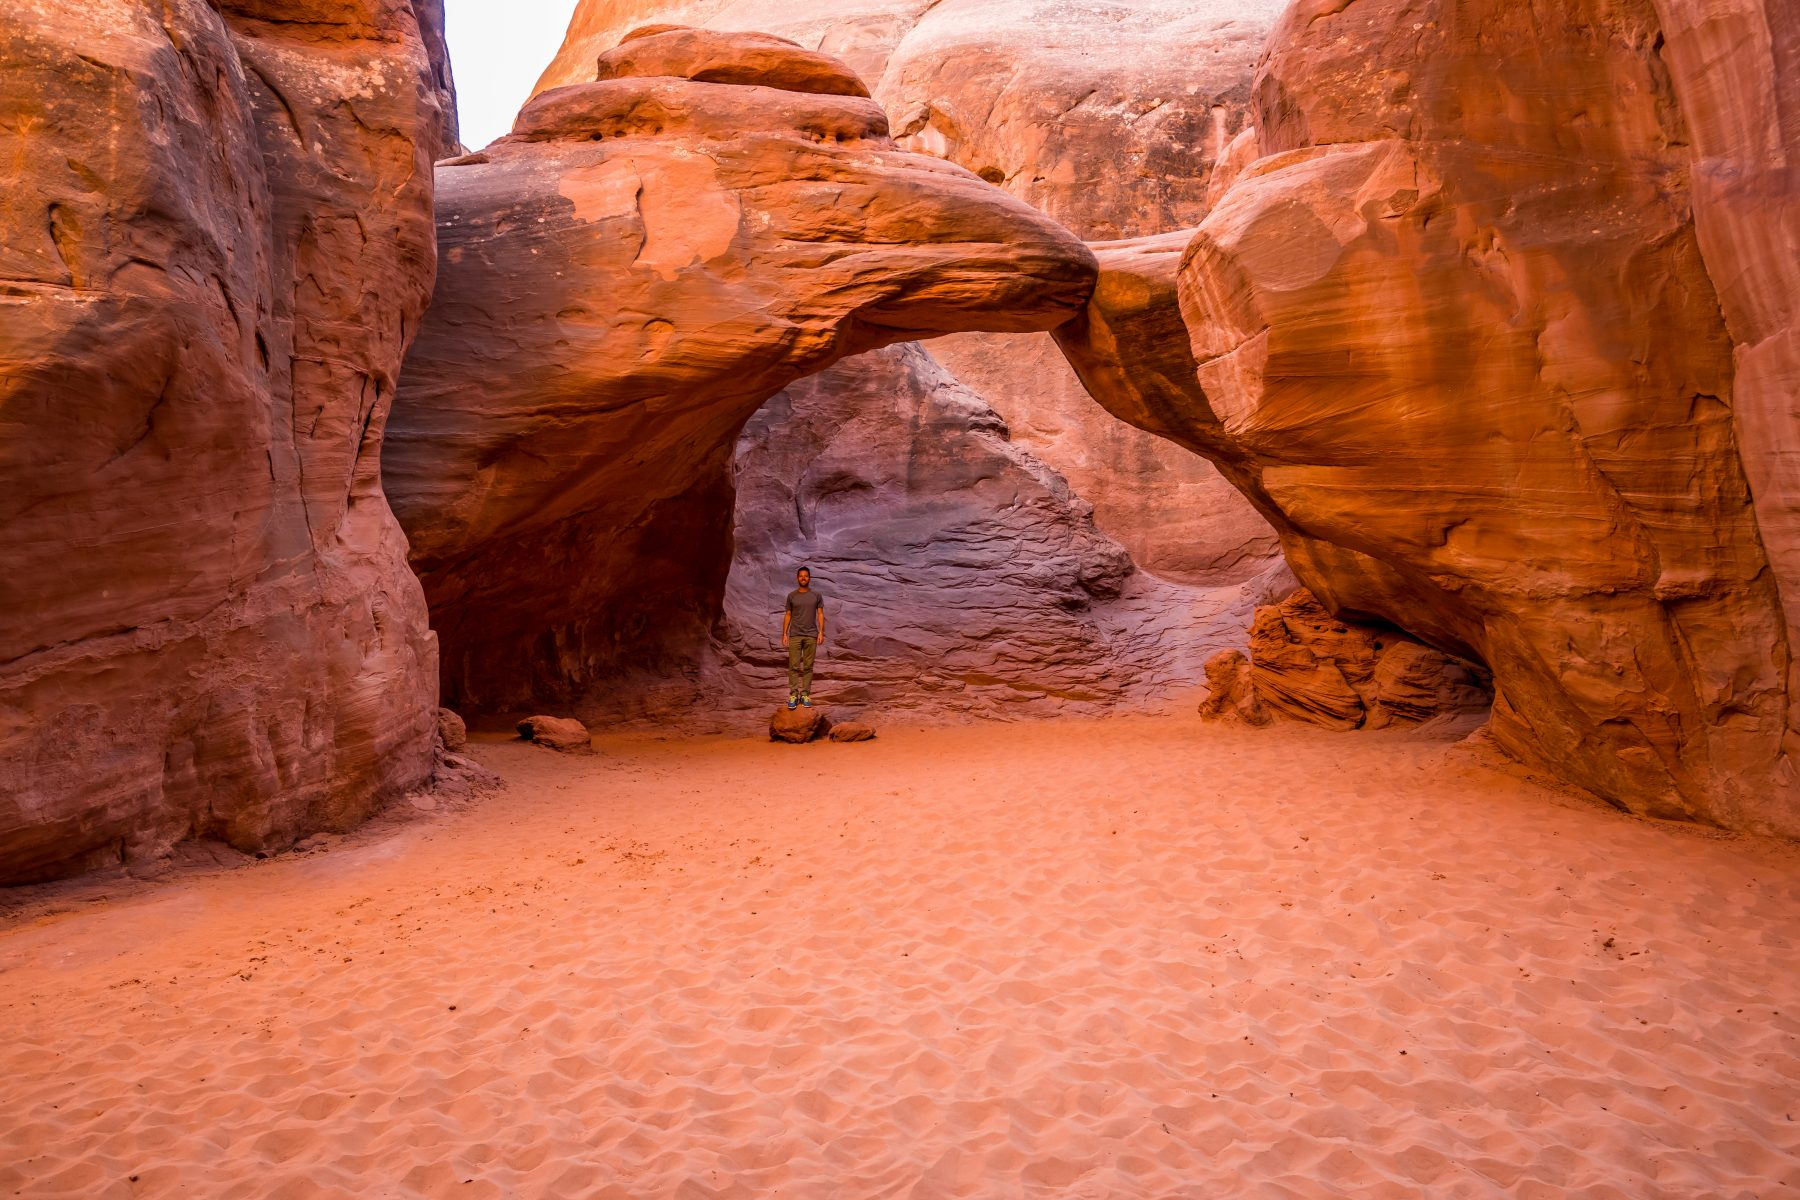 Me, at Sand Dune Arch, for scale.